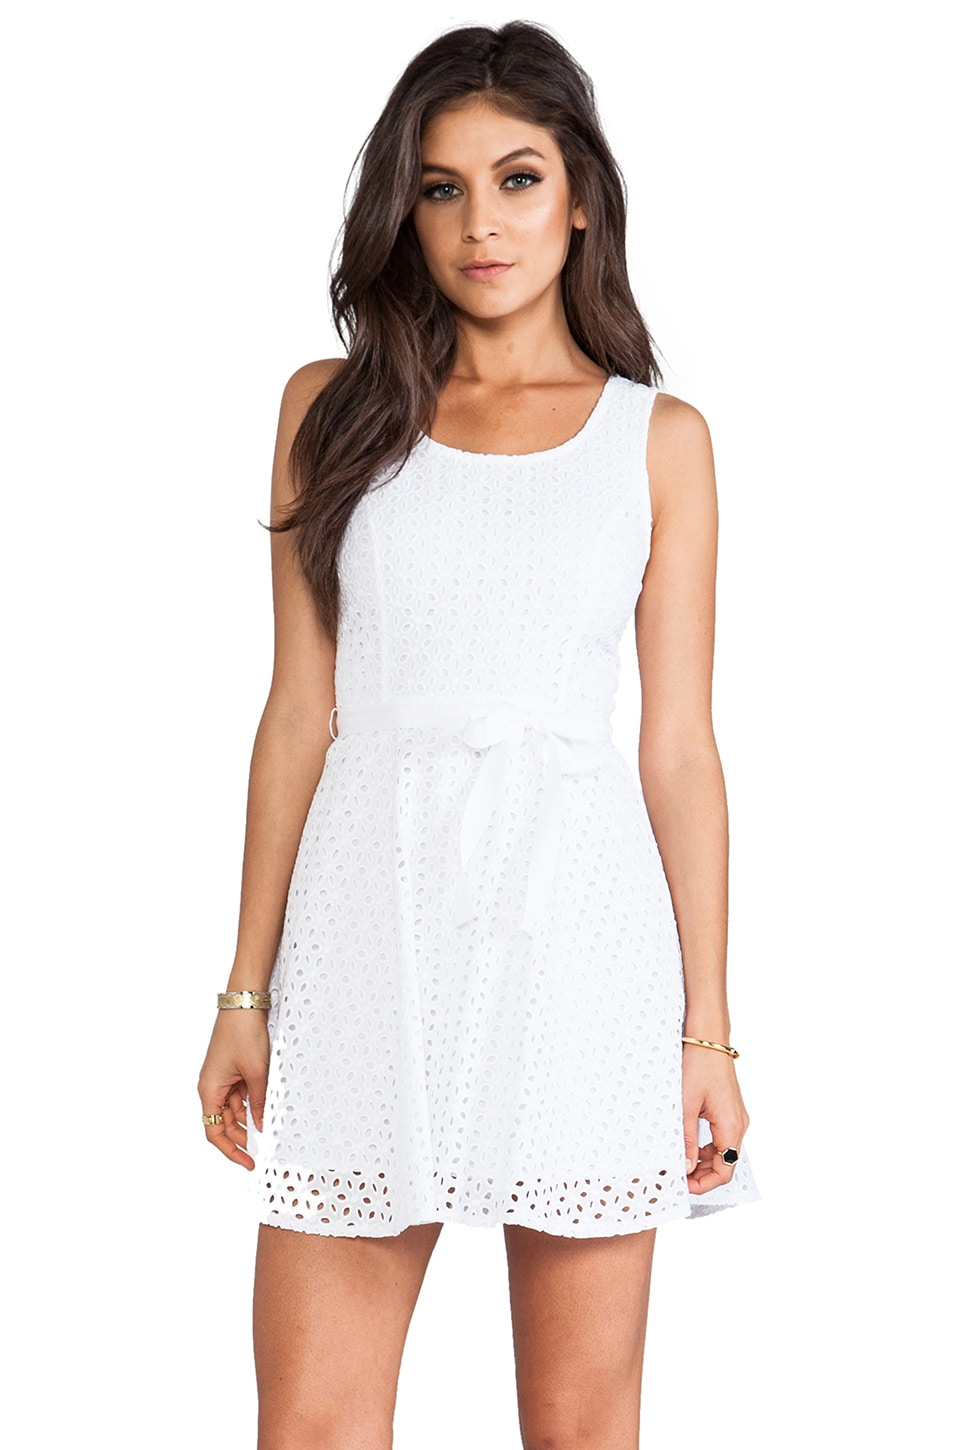 BB Dakota Jerebele Eyelet Mini Dress in White